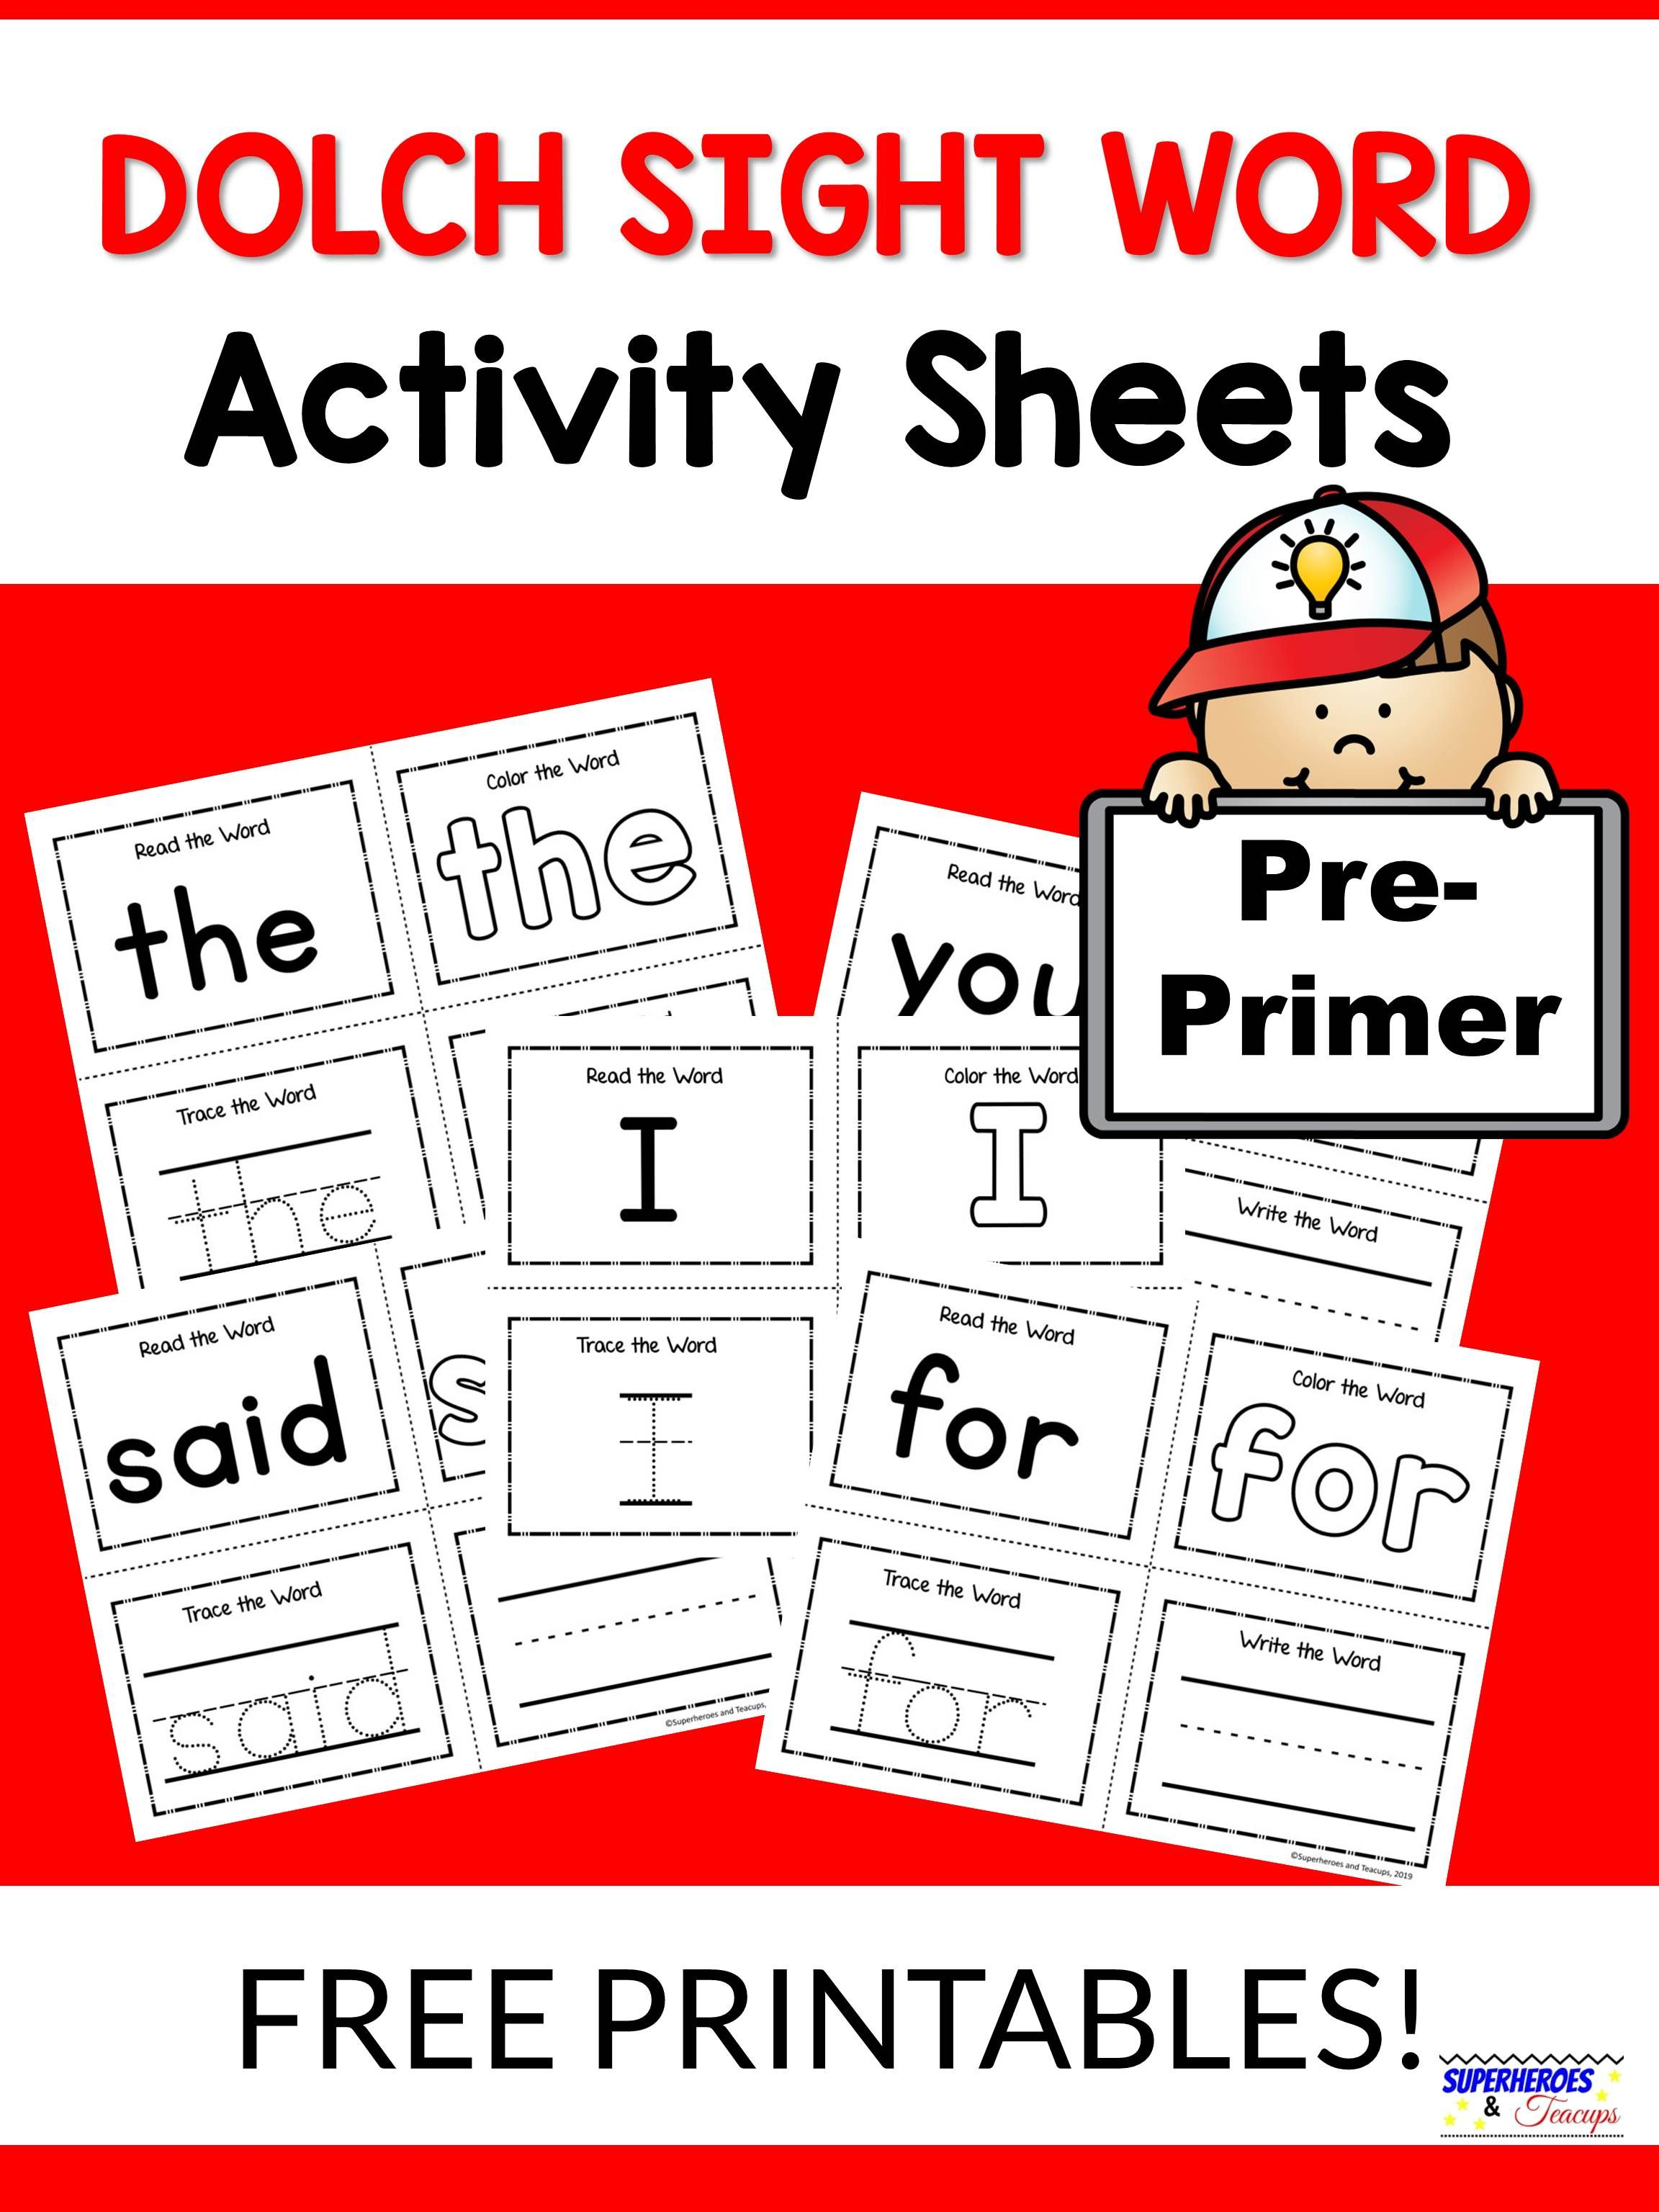 Pre-primer Dolch Sight Word Activity Sheets | Kindergarten